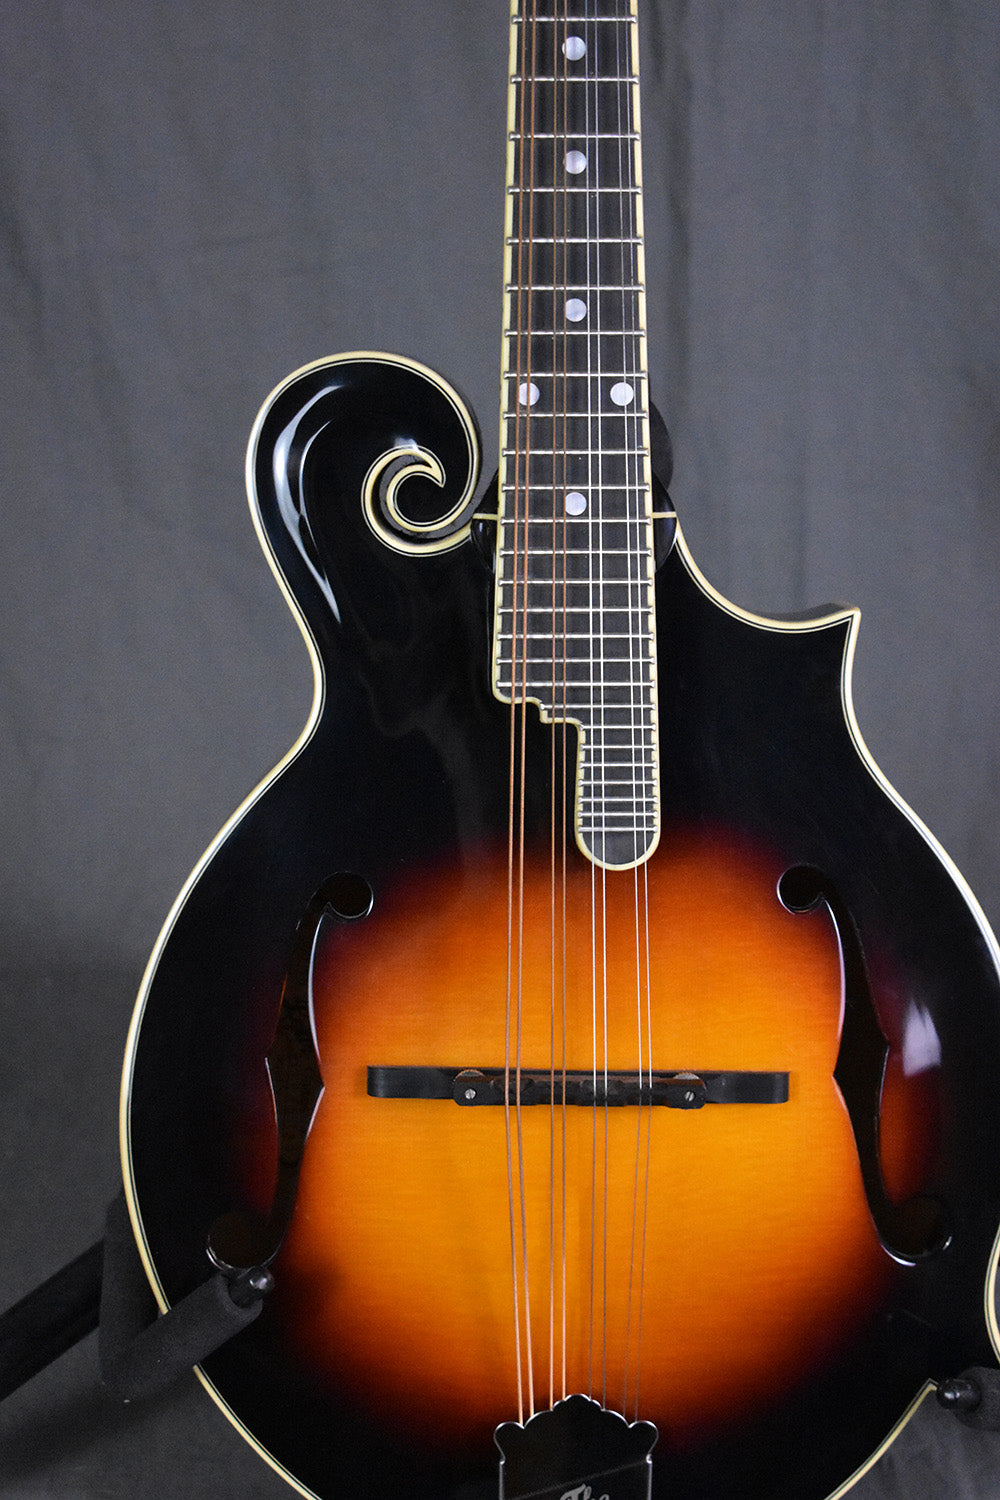 The Loar LM-600 Professional F-Style Mandolin